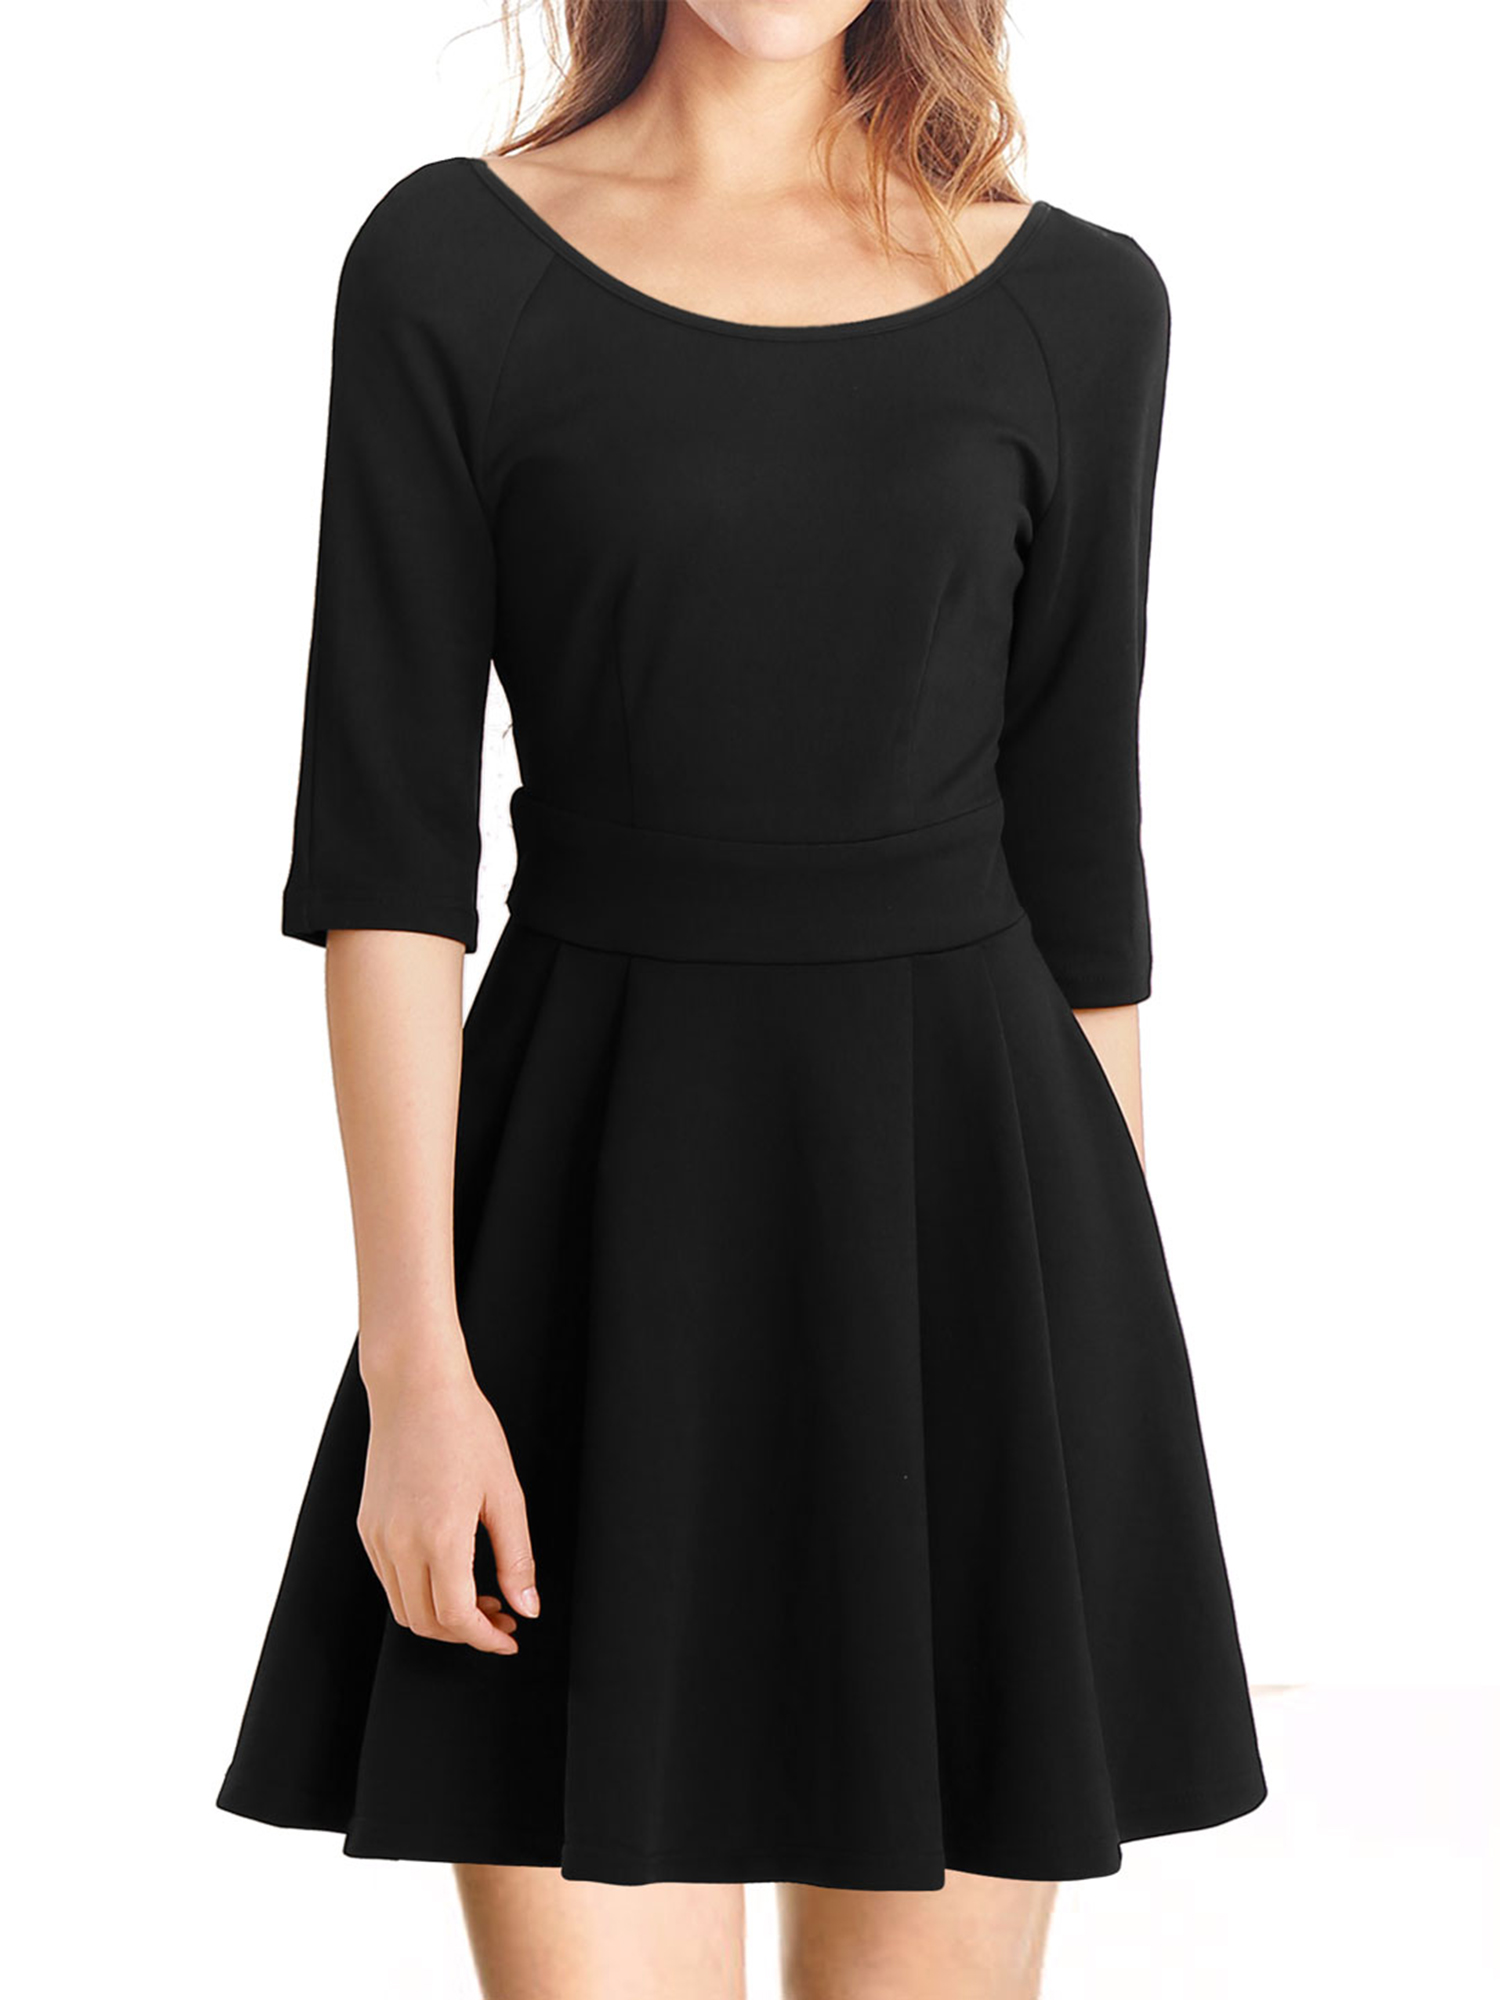 3ab81471a4 Women Vintage Pleated Fit and Flare Skater Dress - Walmart.com